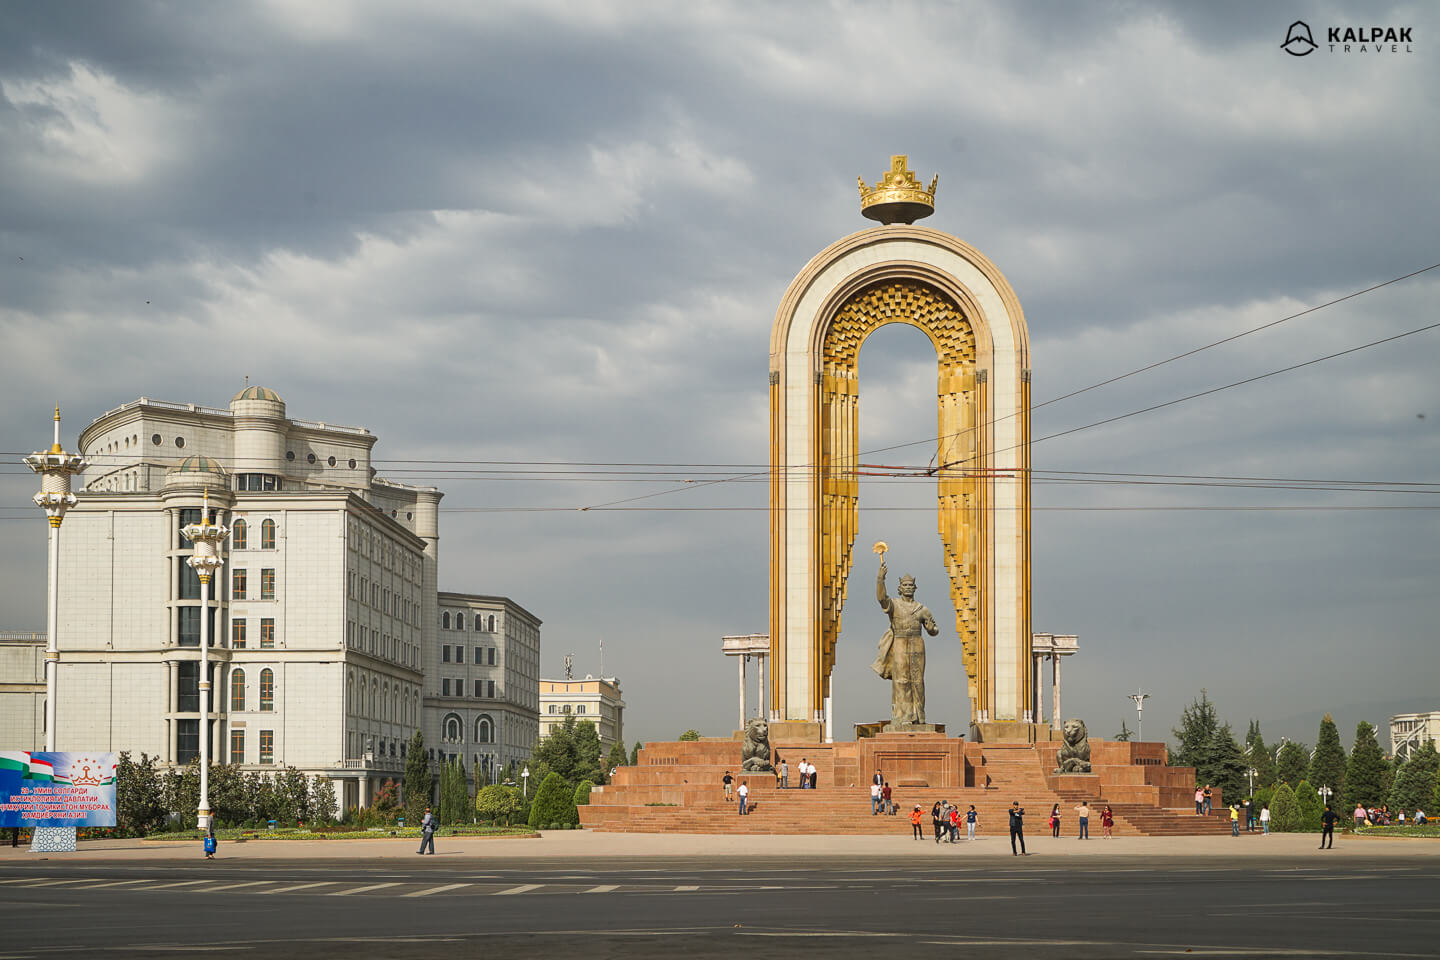 Dushanbe is one of the top places to see in Tajikistan